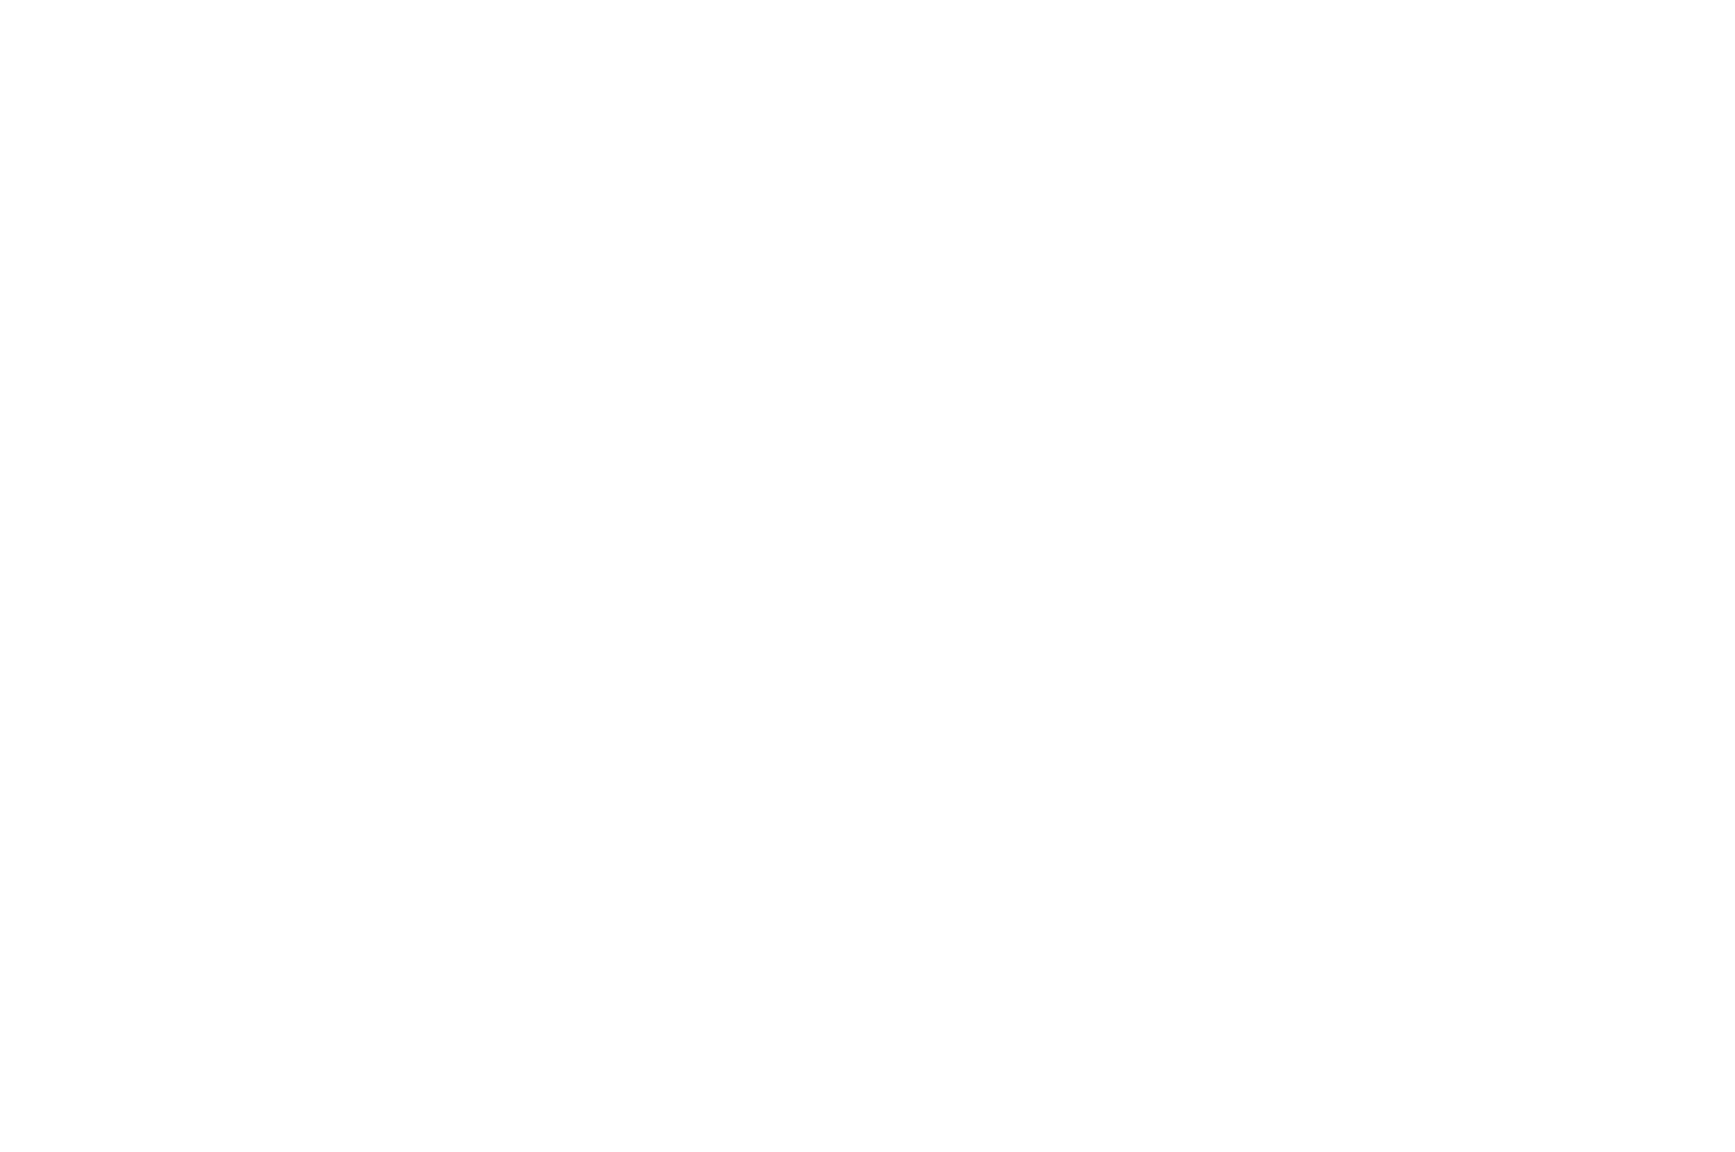 WINNER - Short Close-Up Screenplay Contest - 2020